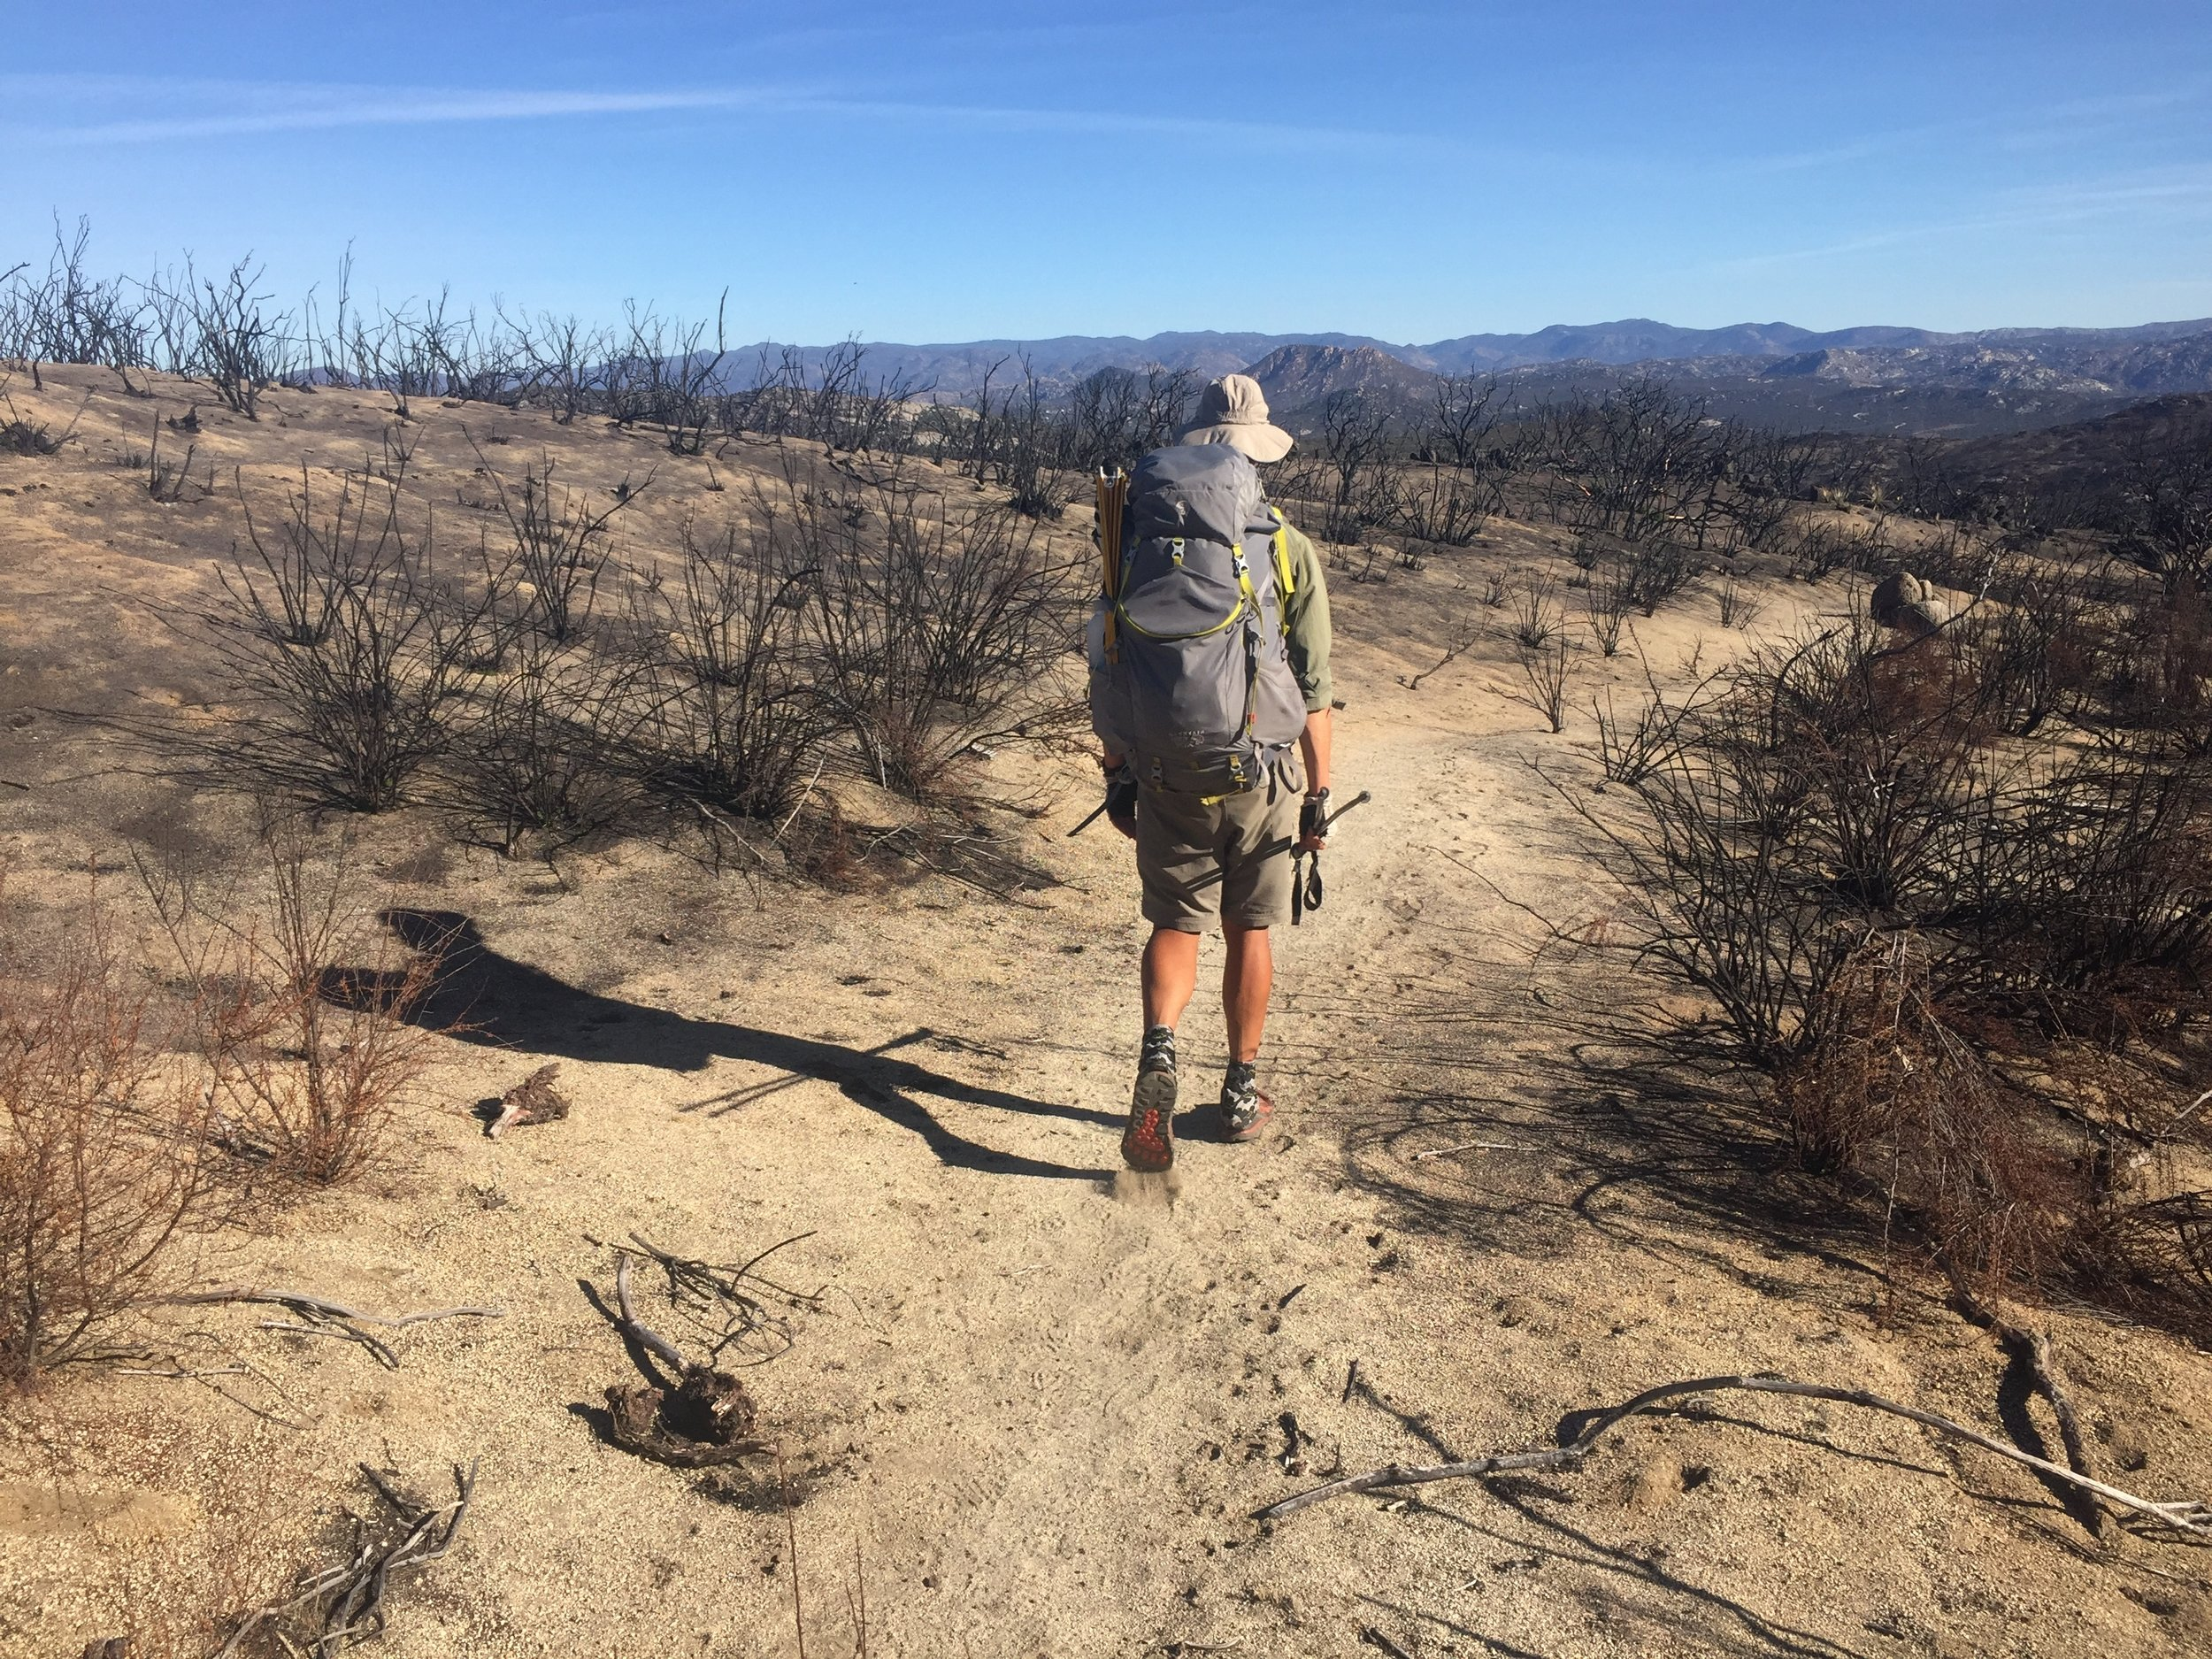 So many burn zones along the PCT in SoCal